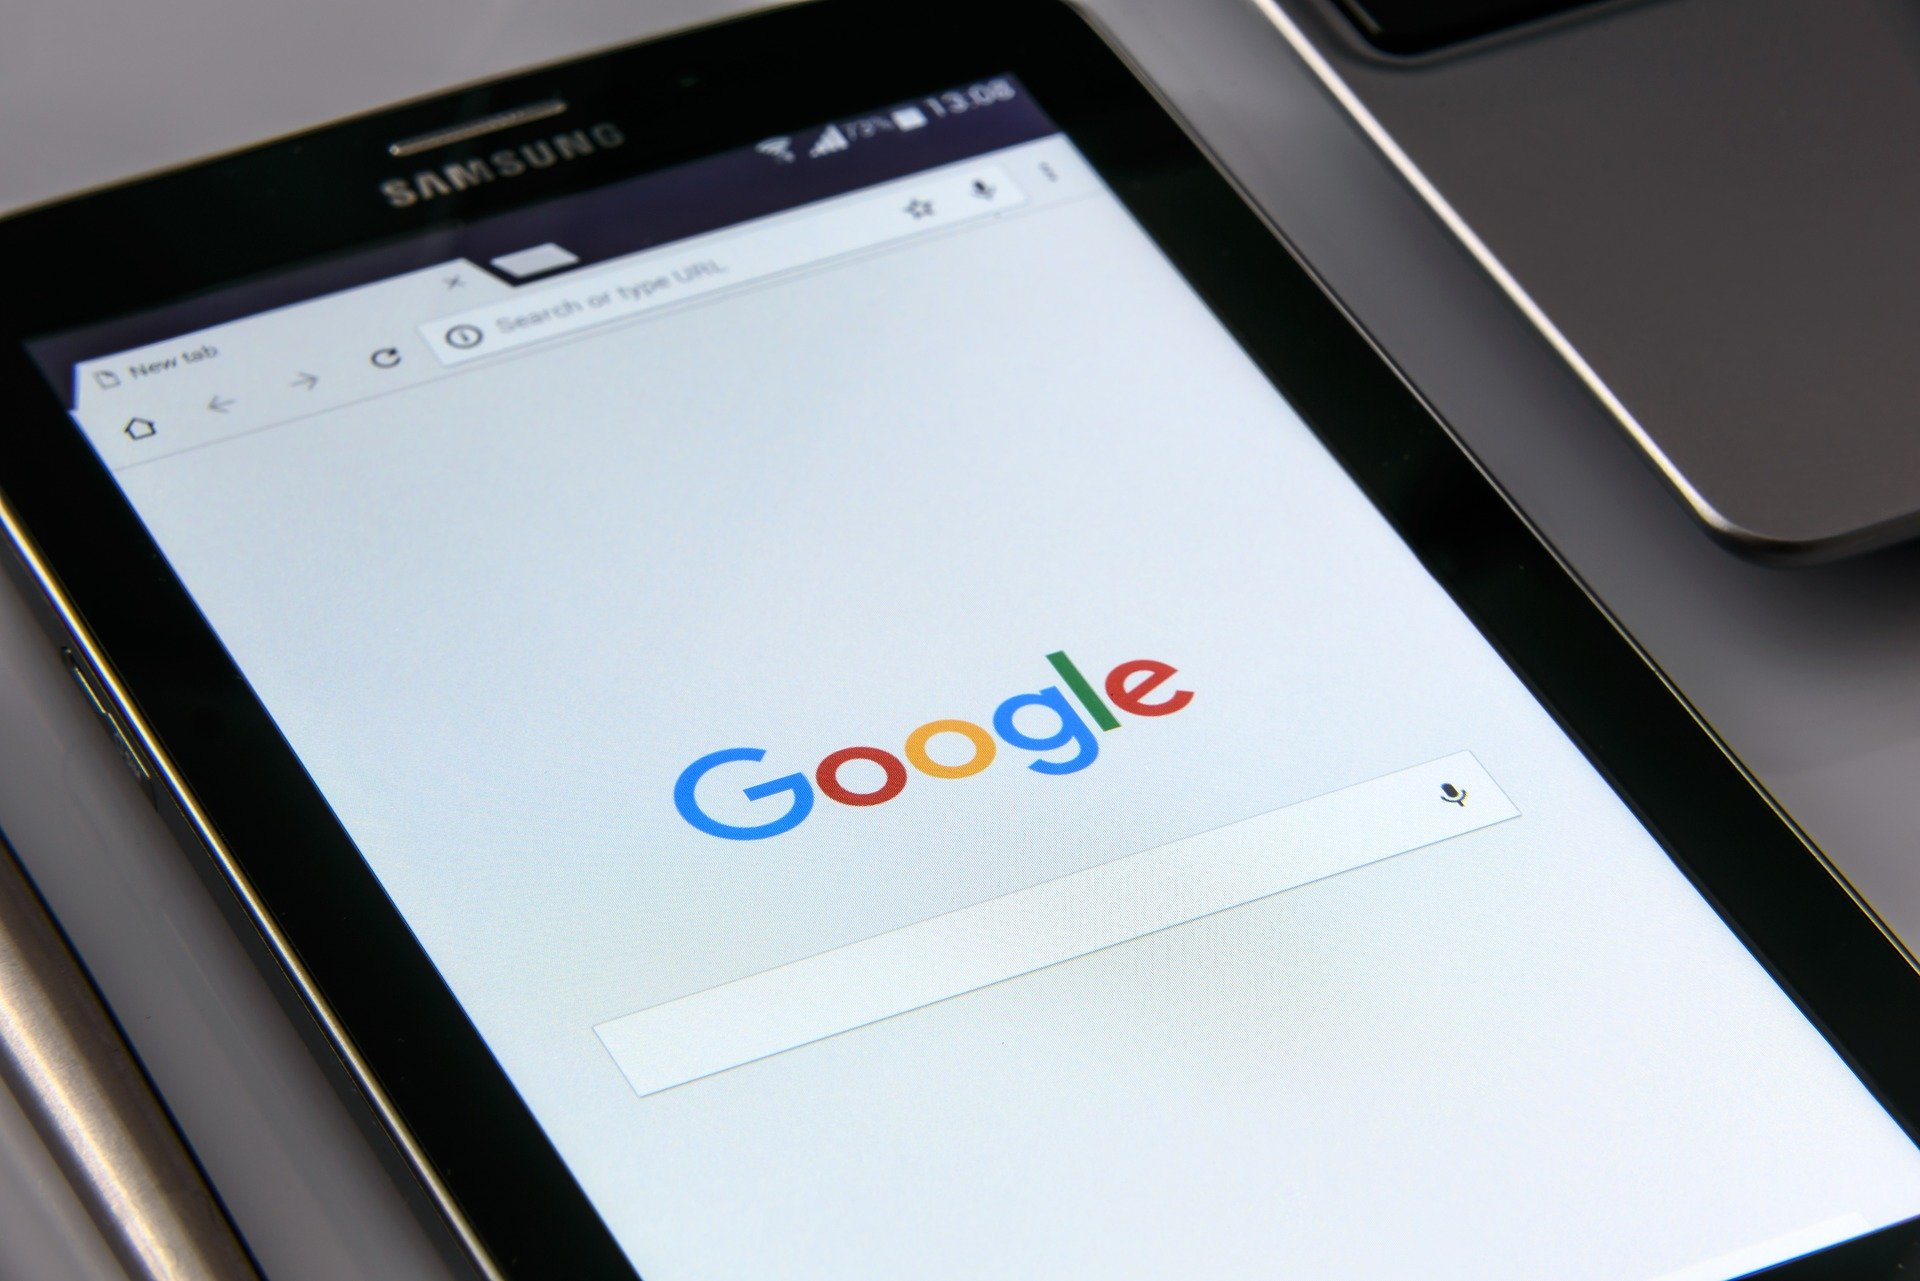 6 SEO tips to help your recruitment firm rank on Google